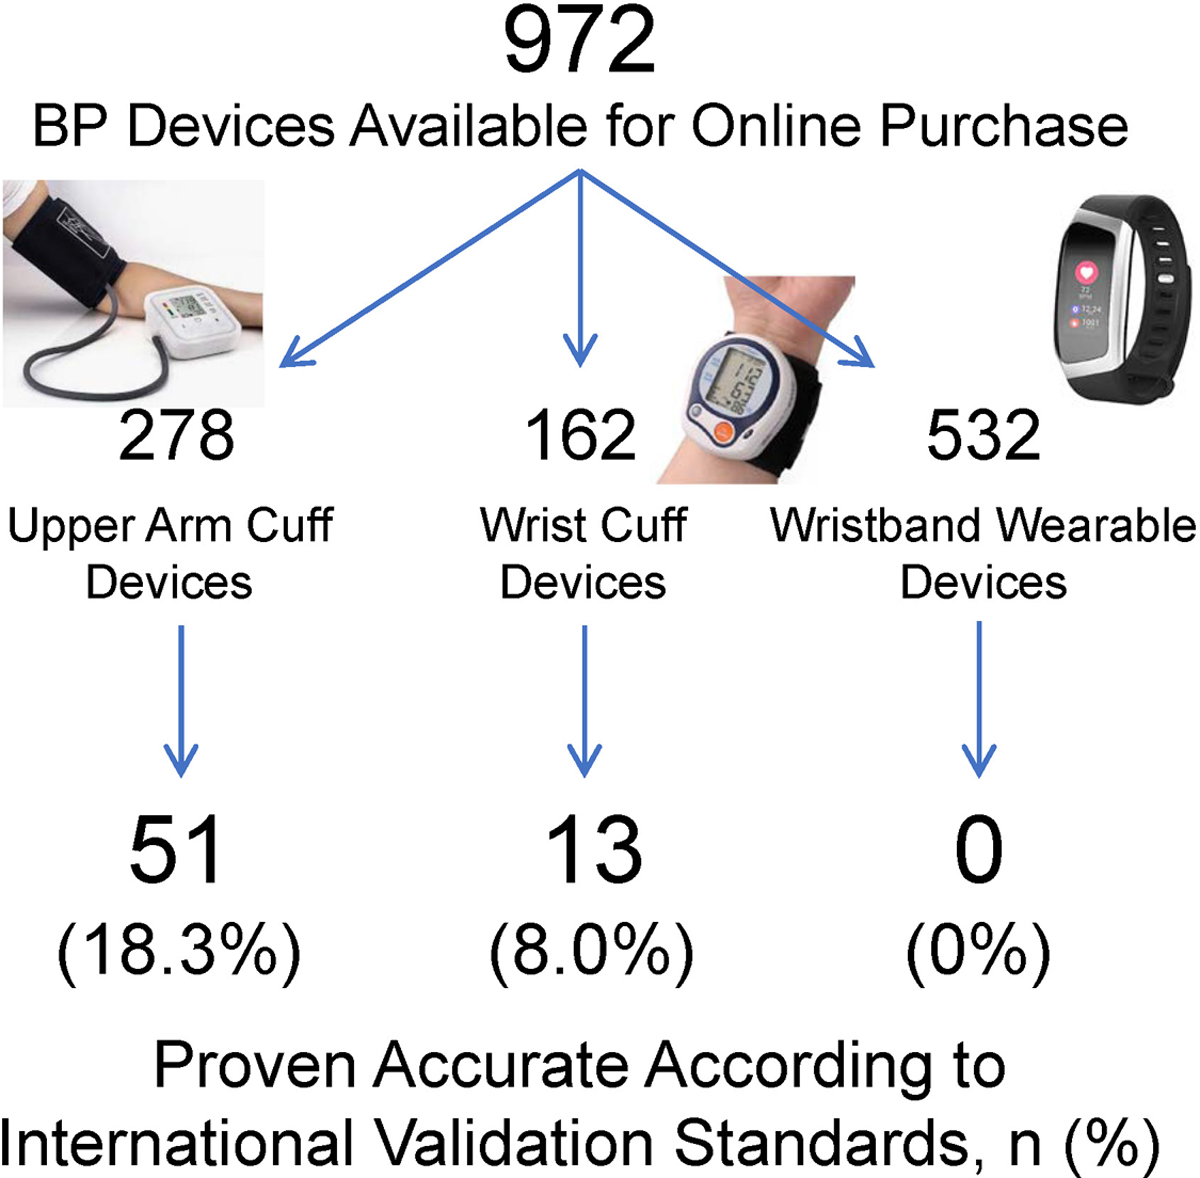 Nonvalidated Home Blood Pressure Devices Dominate the Online ...